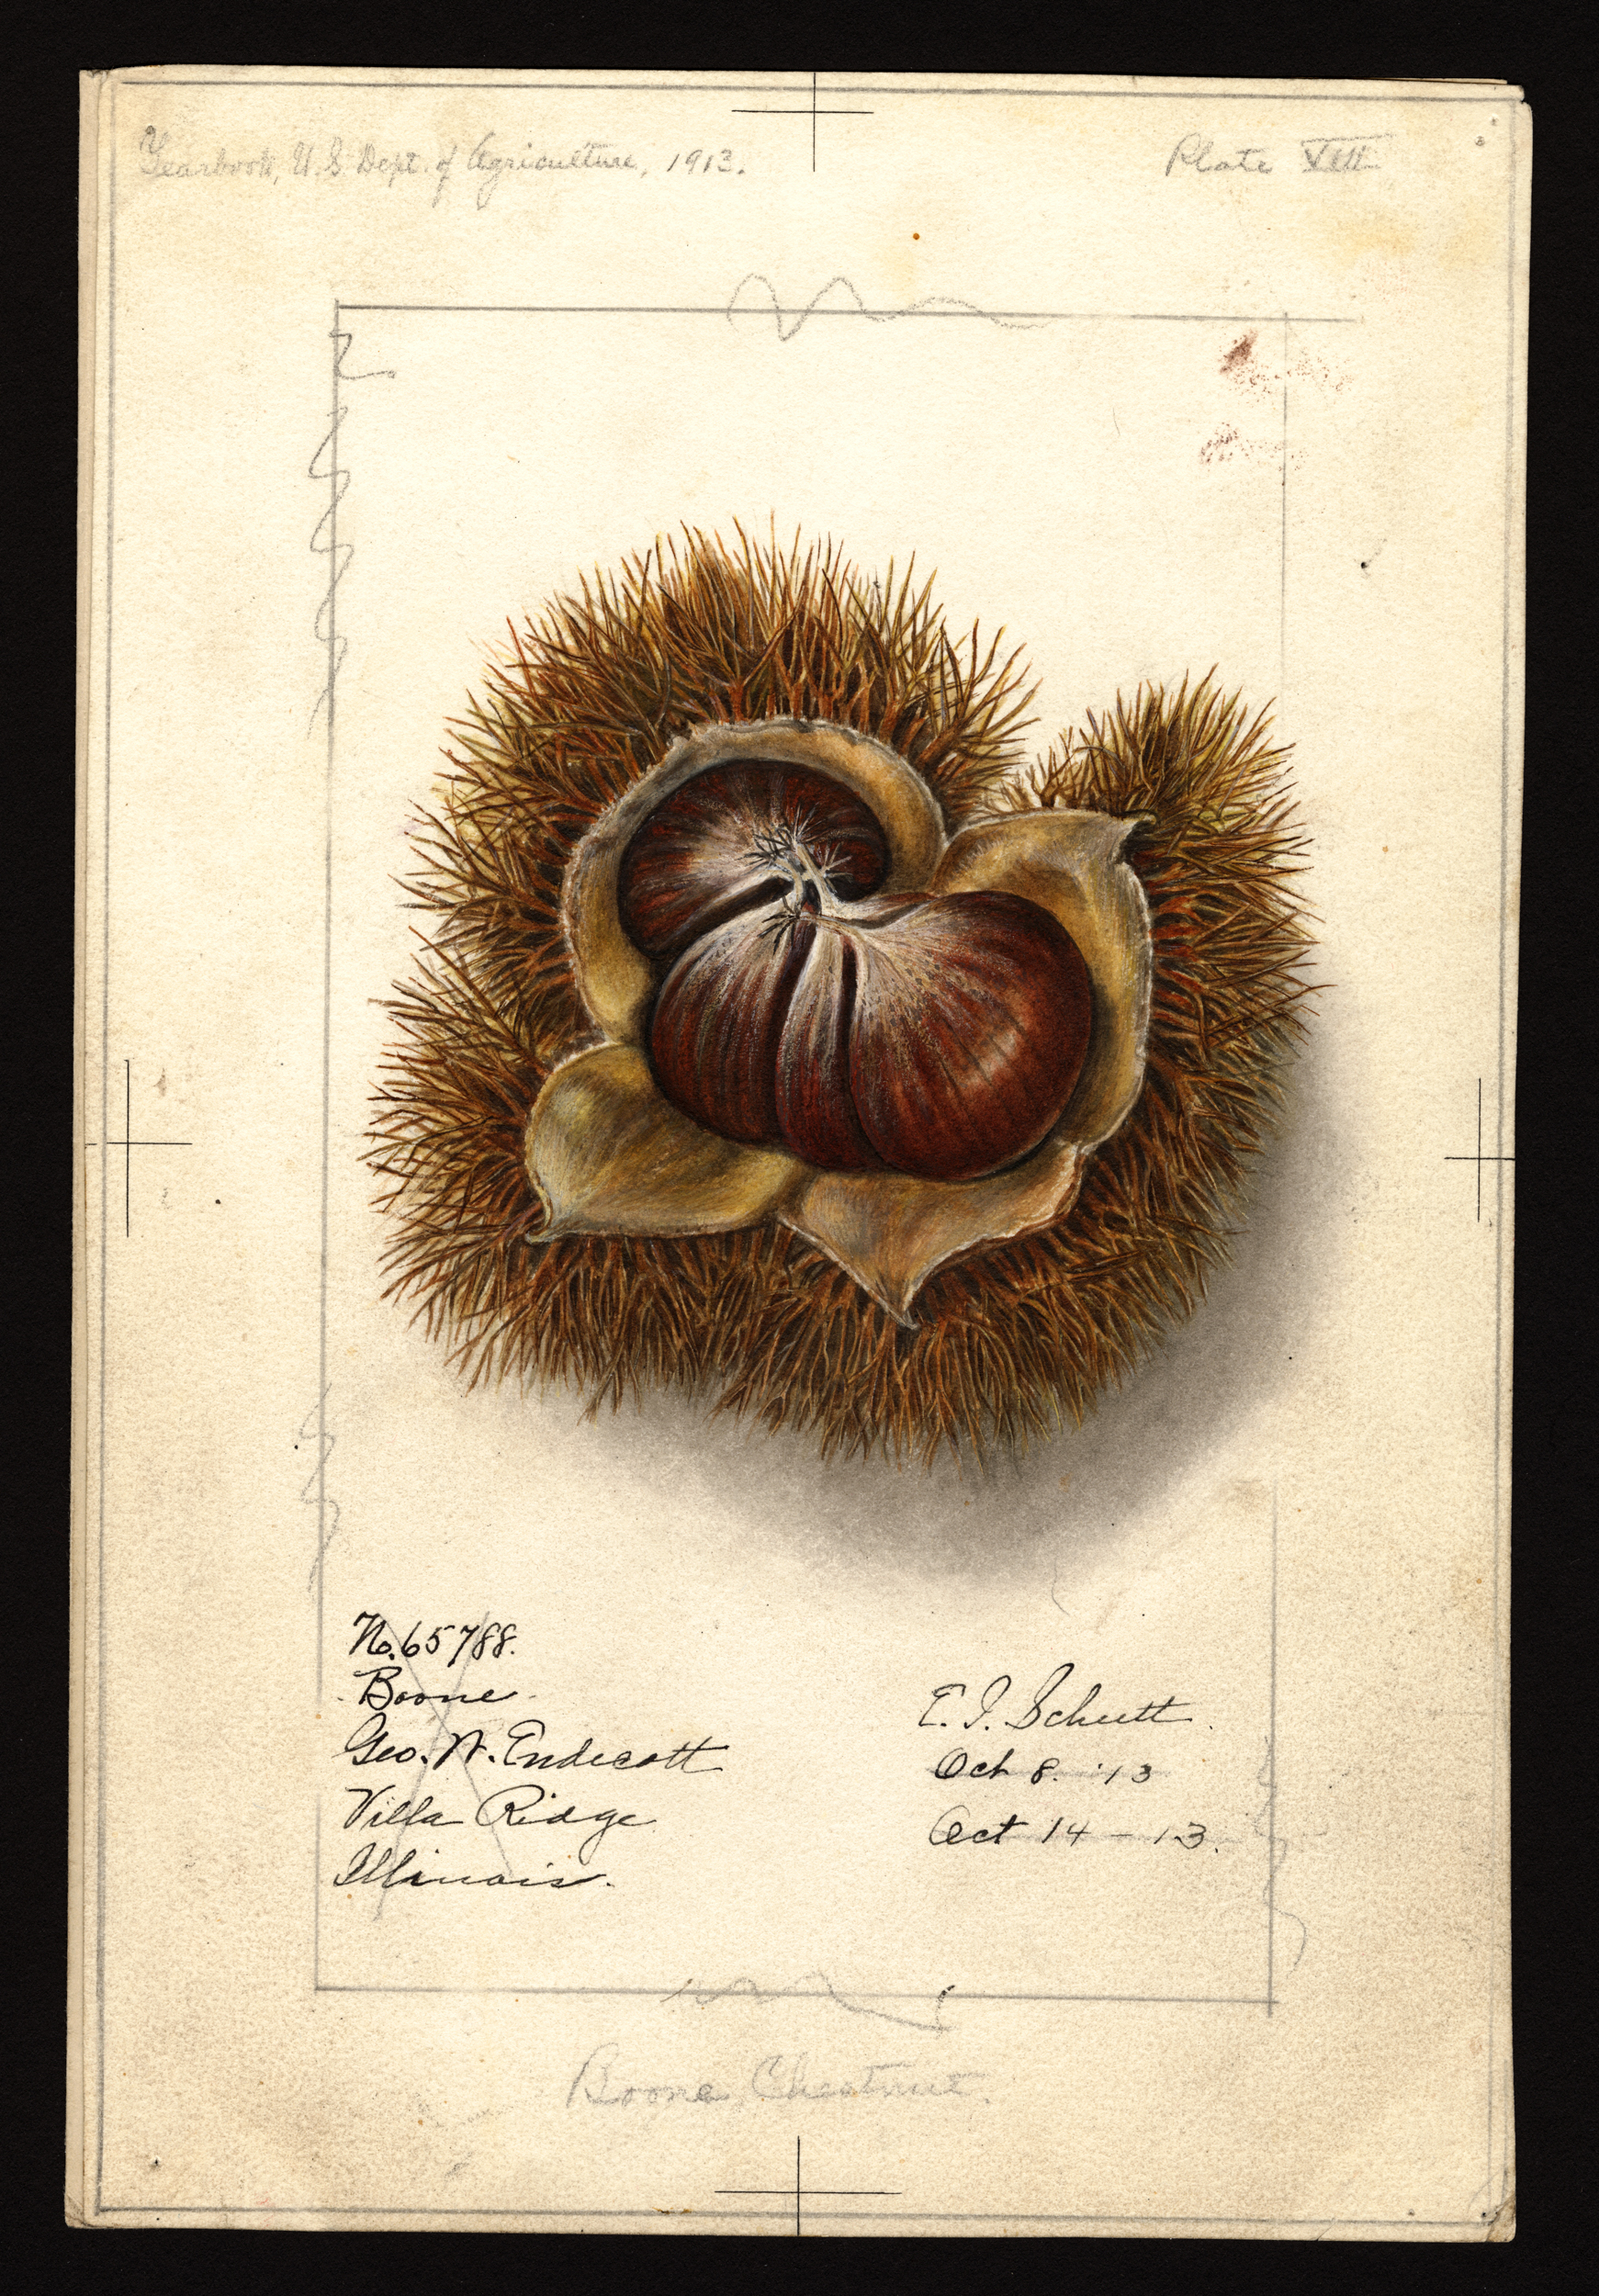 American Chestnut // Illustration via U.S. Department of Agriculture Pomological Watercolor Collection. Rare and Special Collections, National Agricultural Library, Beltsville, MD 20705